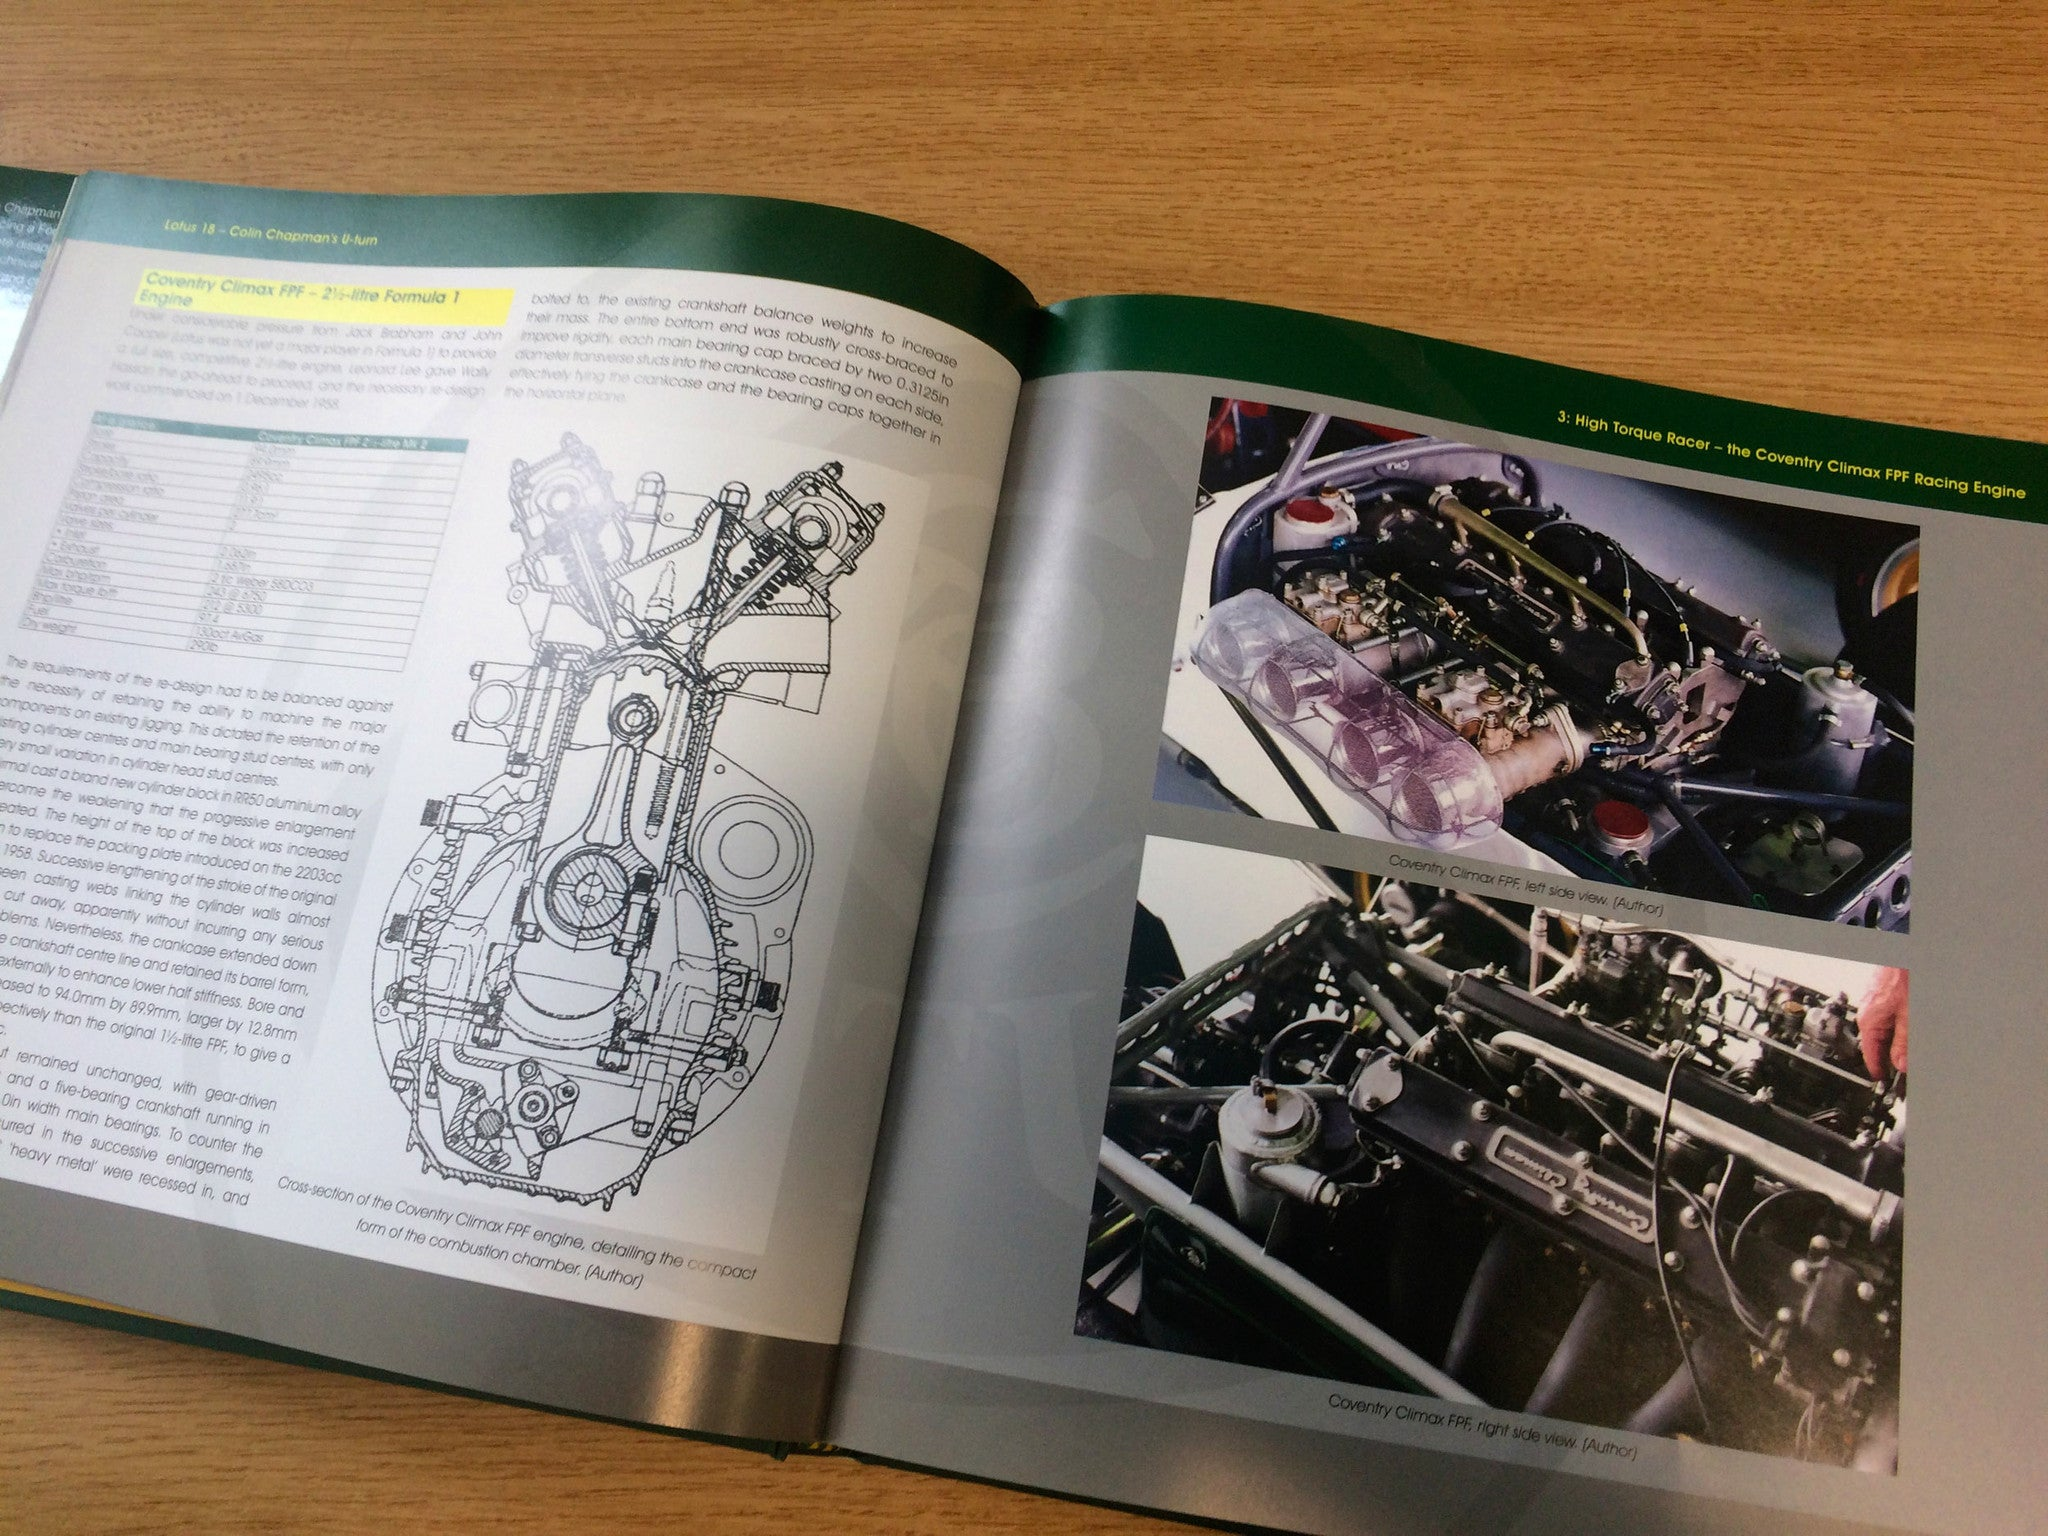 Lotus 18 – Colin Chapman's U-turn